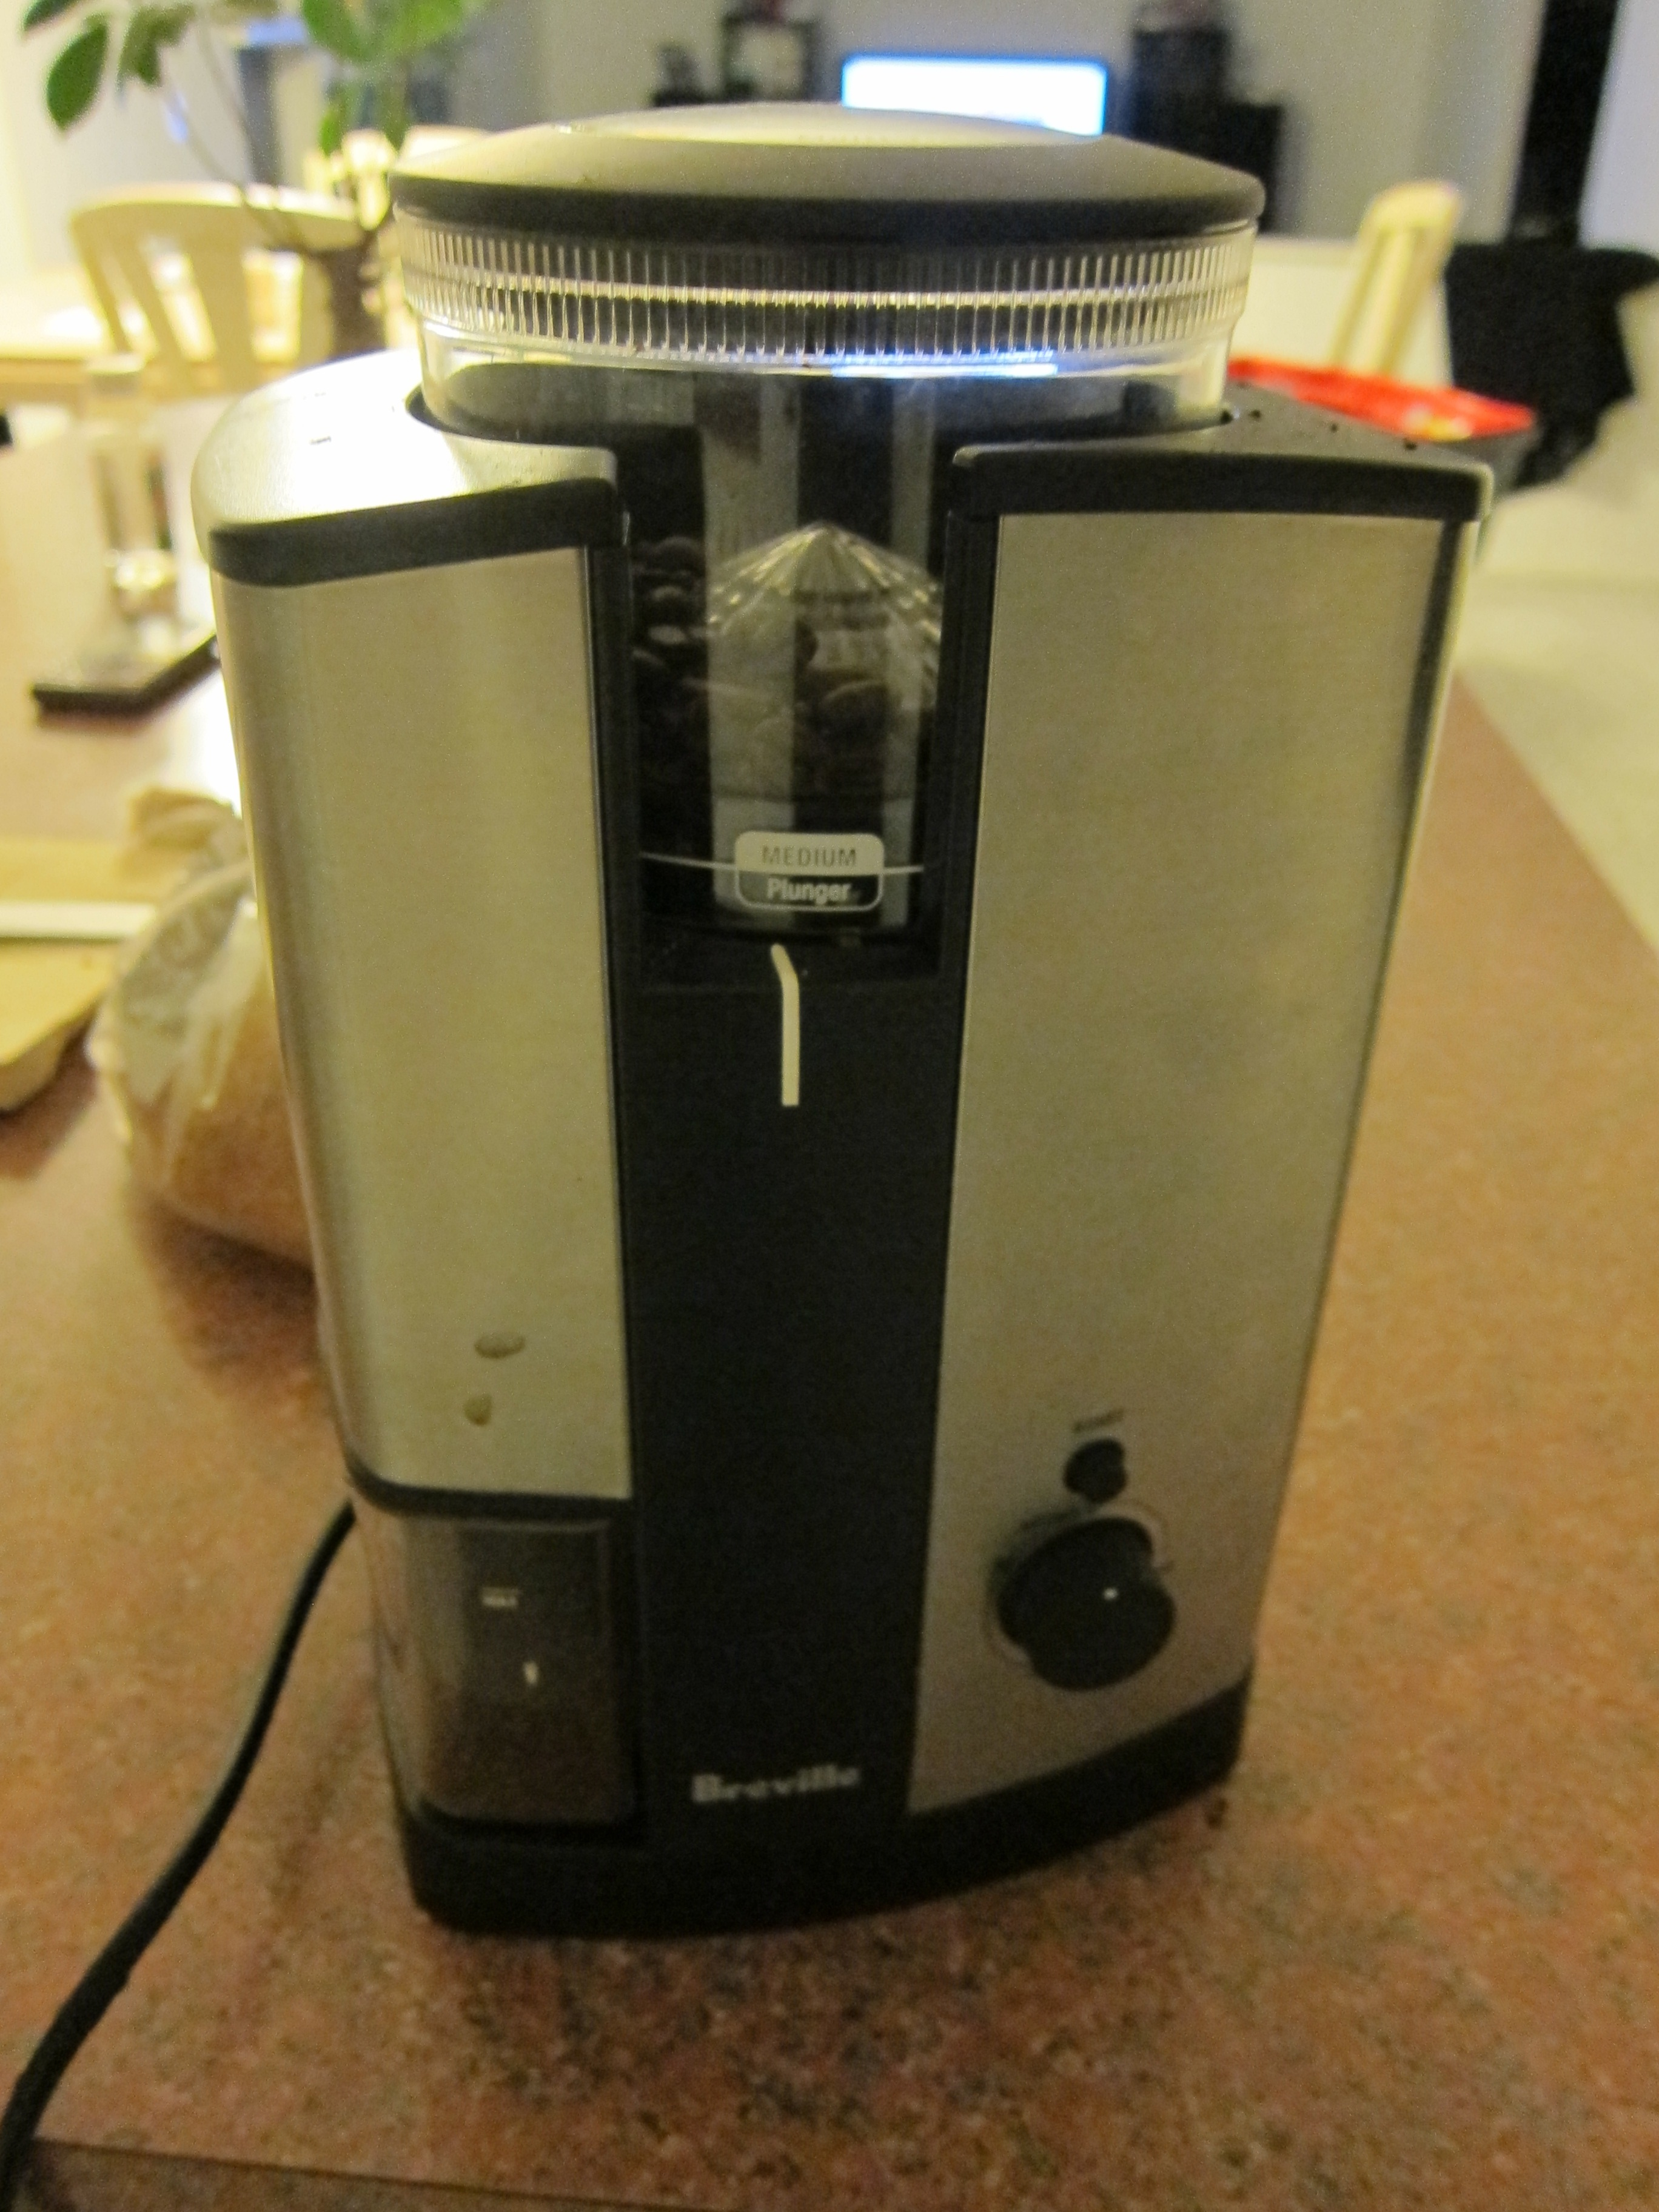 How to repair/remove the on/off switch on a Breville BCG450XL conical burr grinder